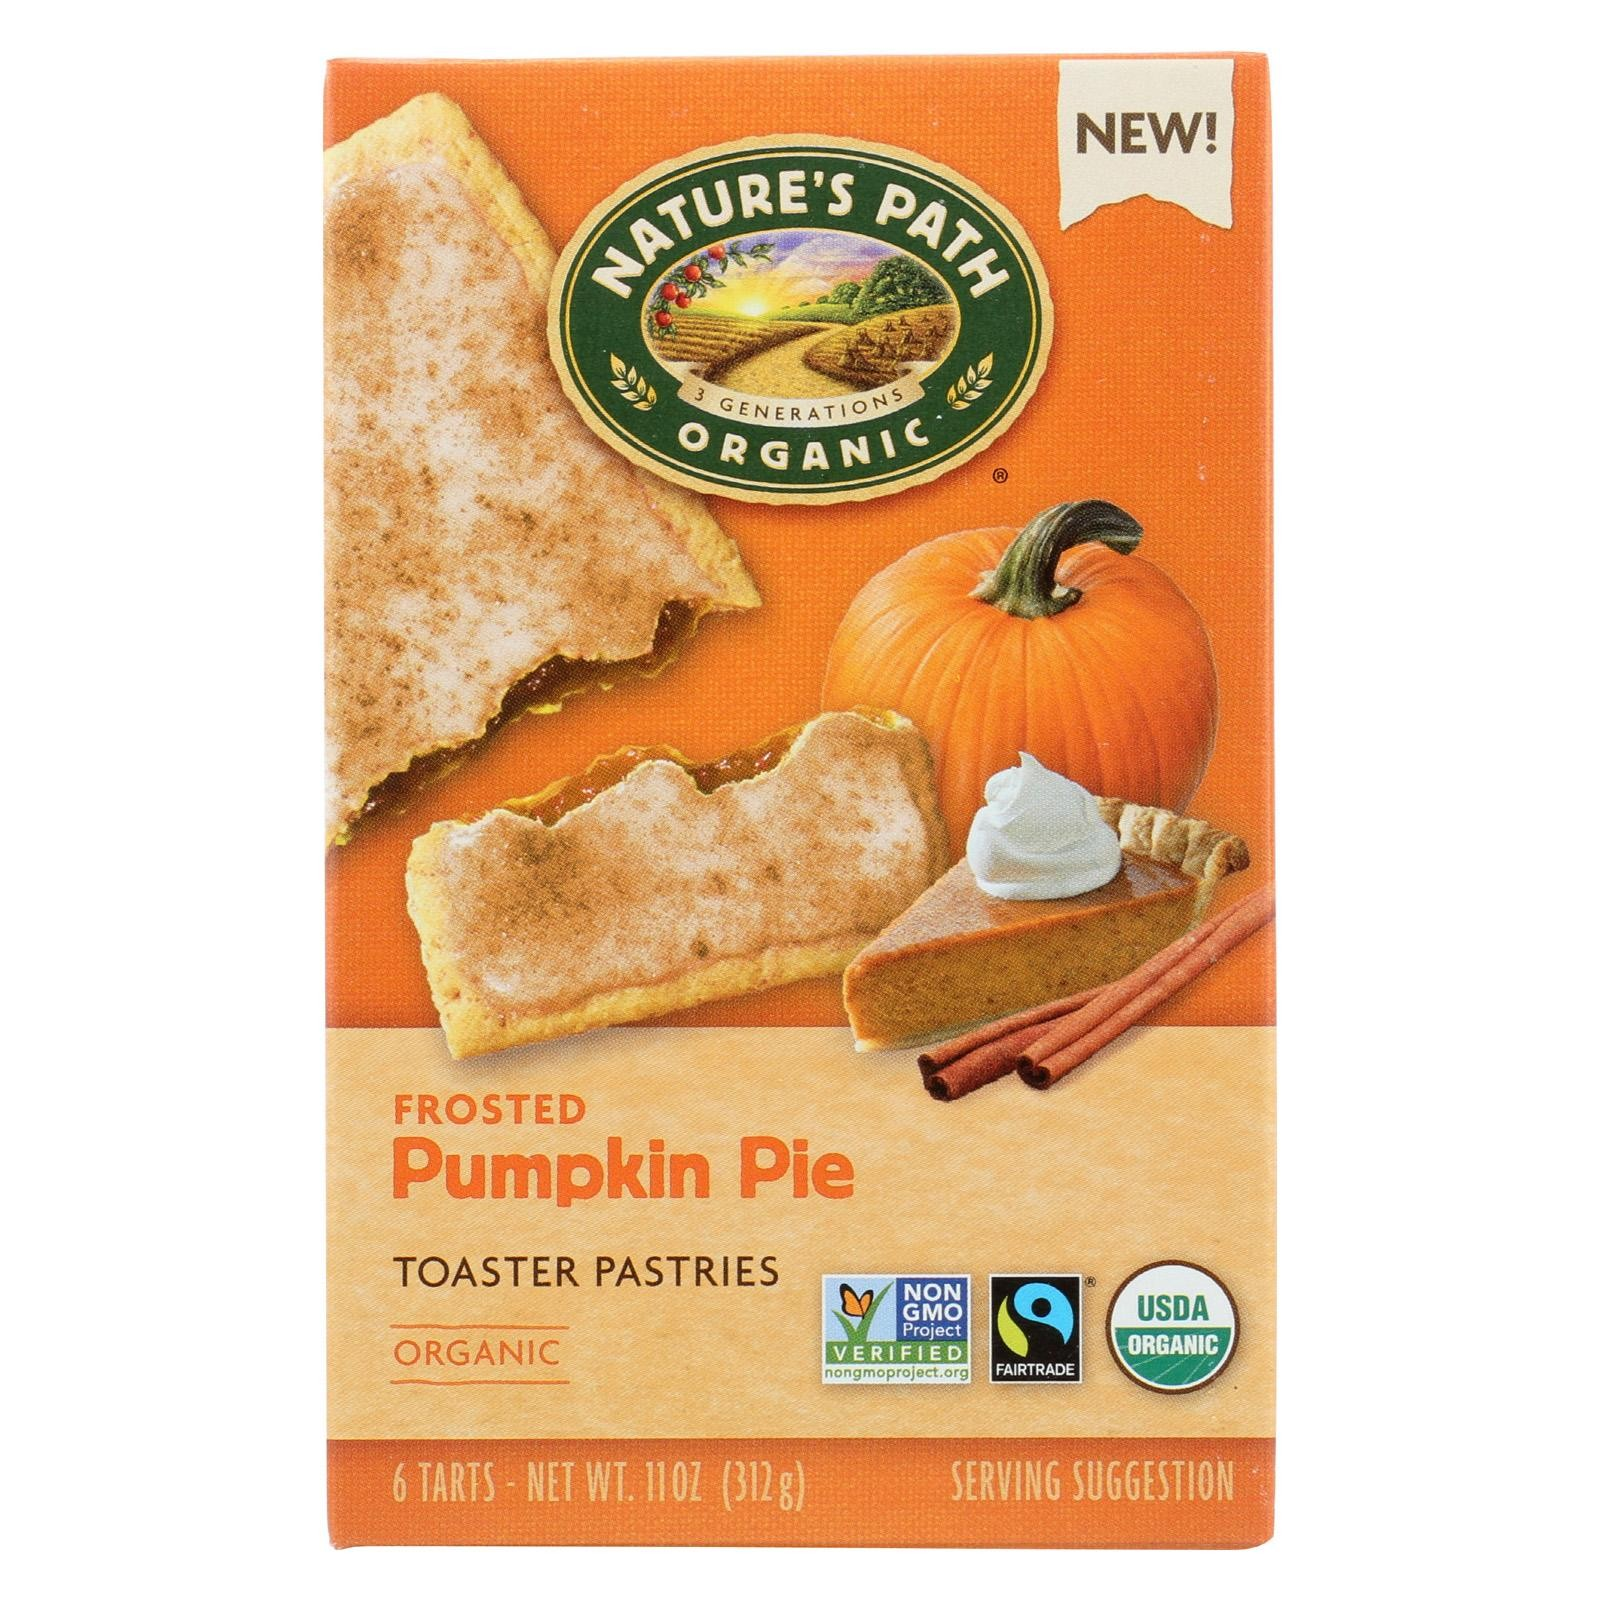 Nature's Path Toaster Pastry - Organic - Pumpkin - Pack of 12 - 11 Oz